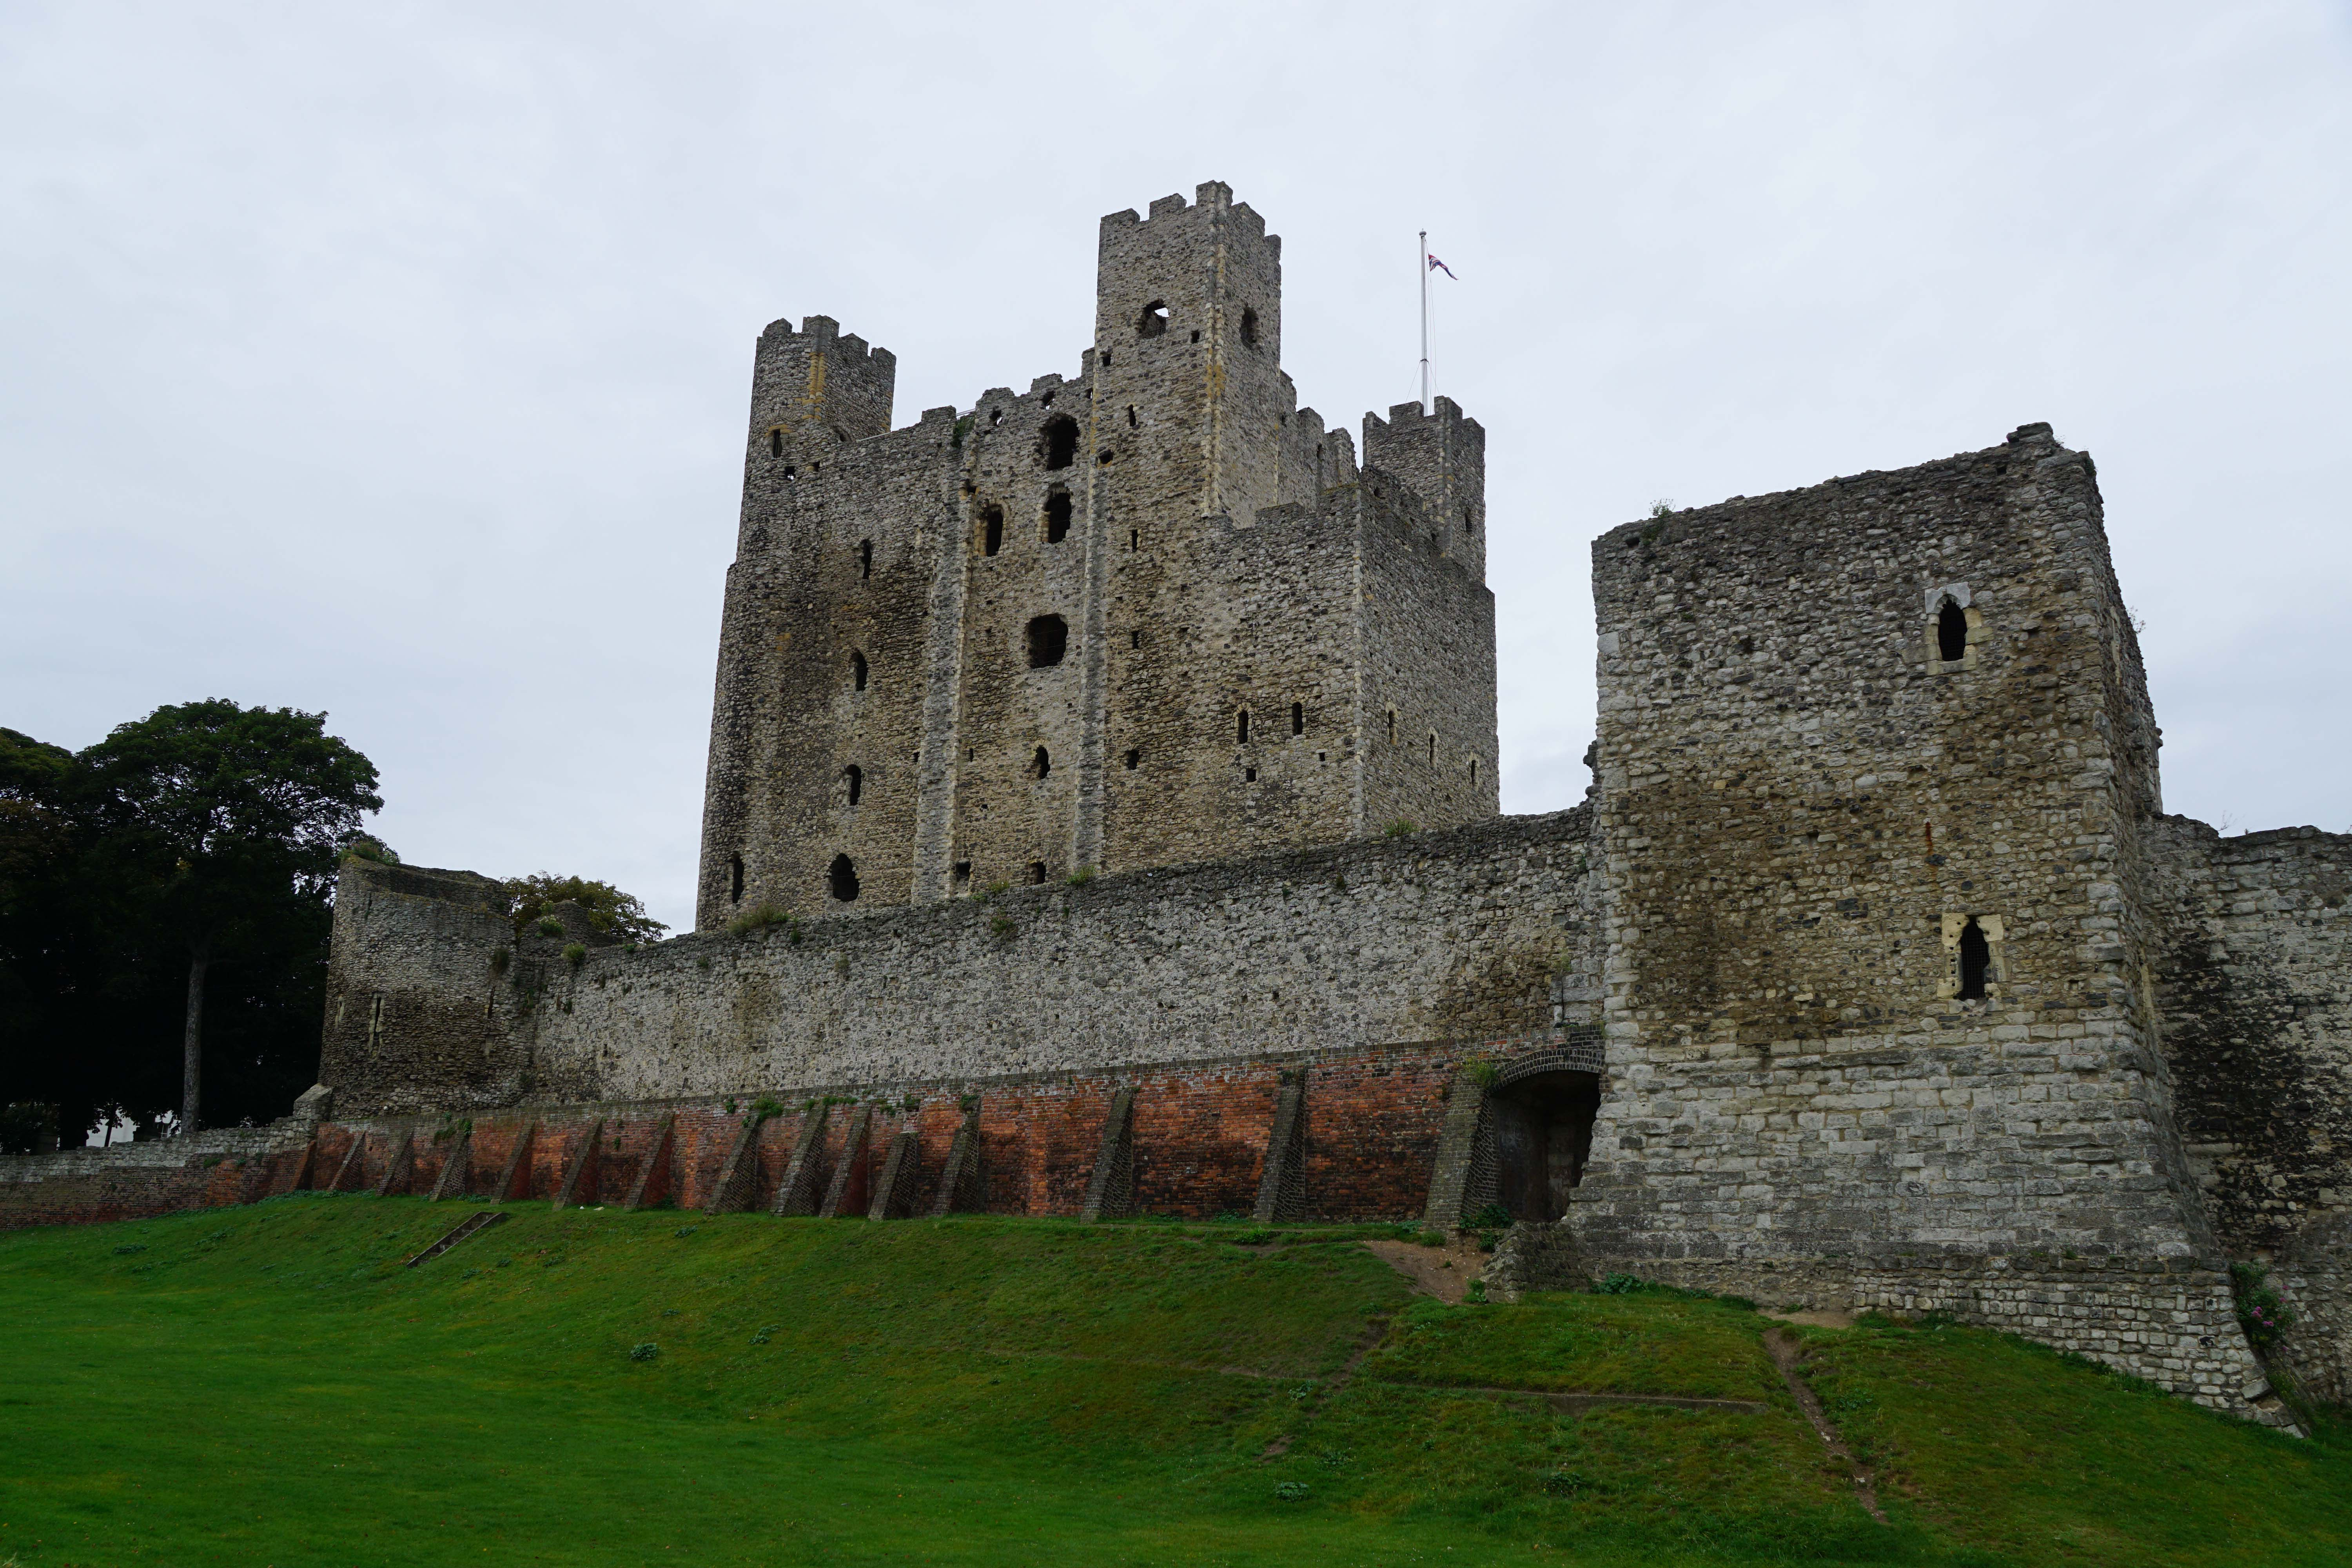 Curtain Wall Medieval Times : Rochester castle and town walls south east castles